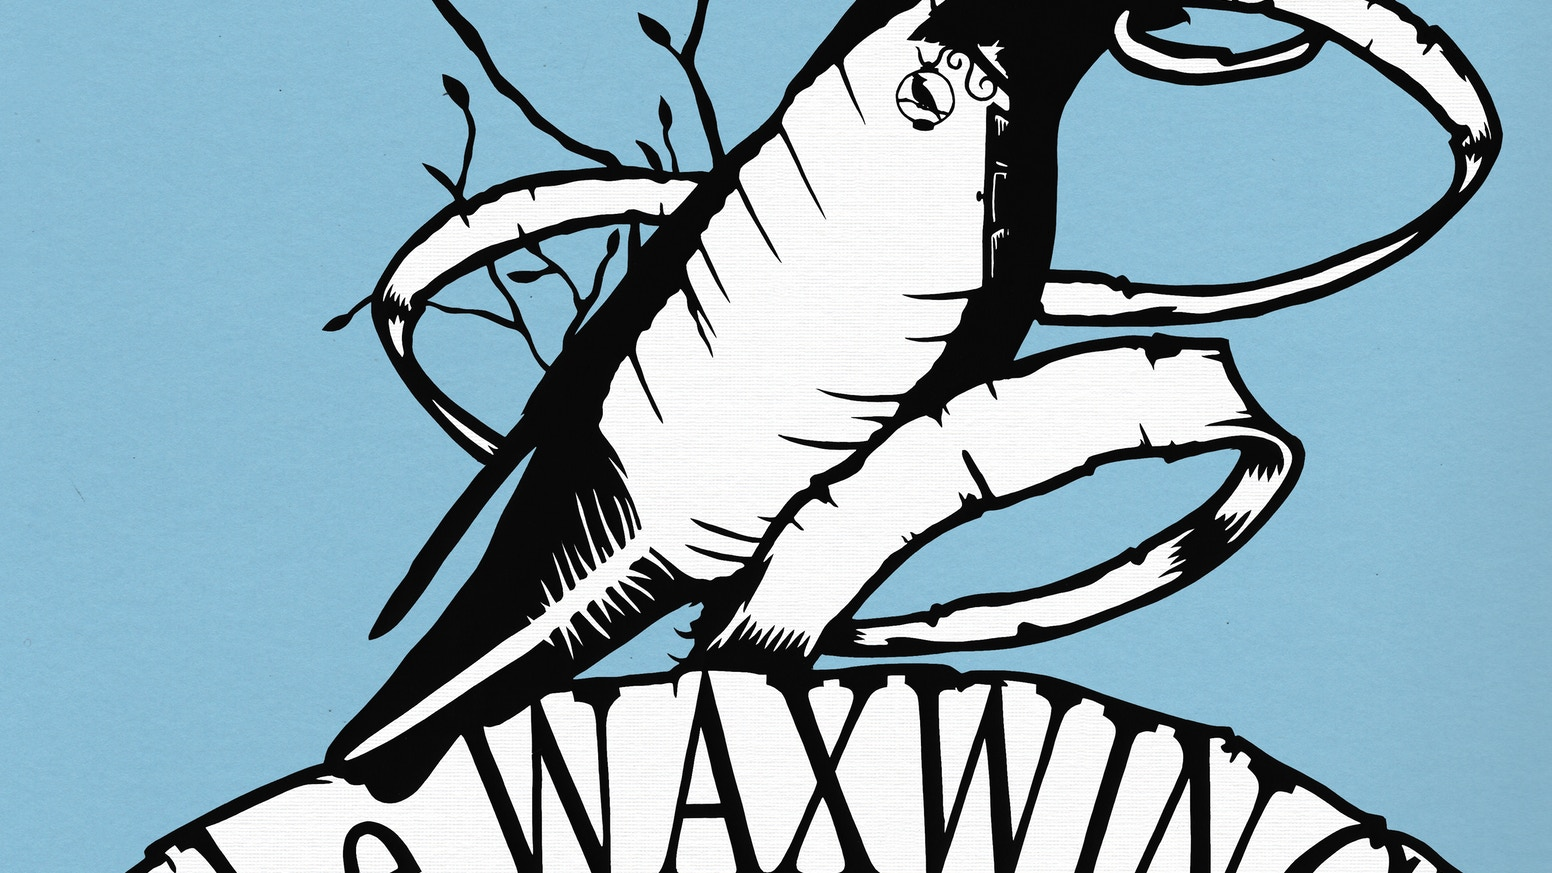 The Waxwing, an artist consignment shop, expands into a new bigger space with plans to feature the work of even more artists!!!